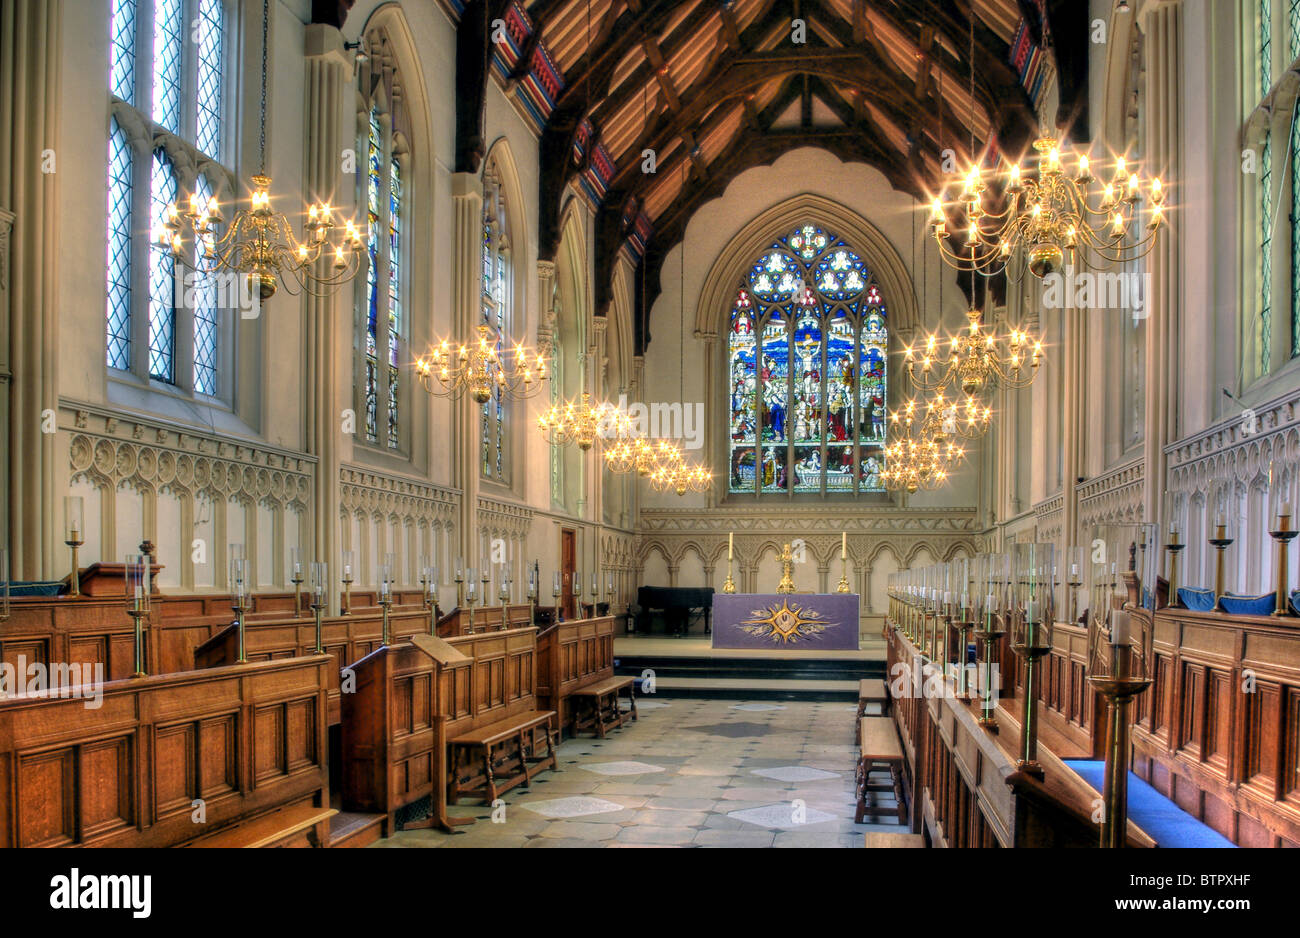 An Interior View Of The Chapel At Corpus Christi College